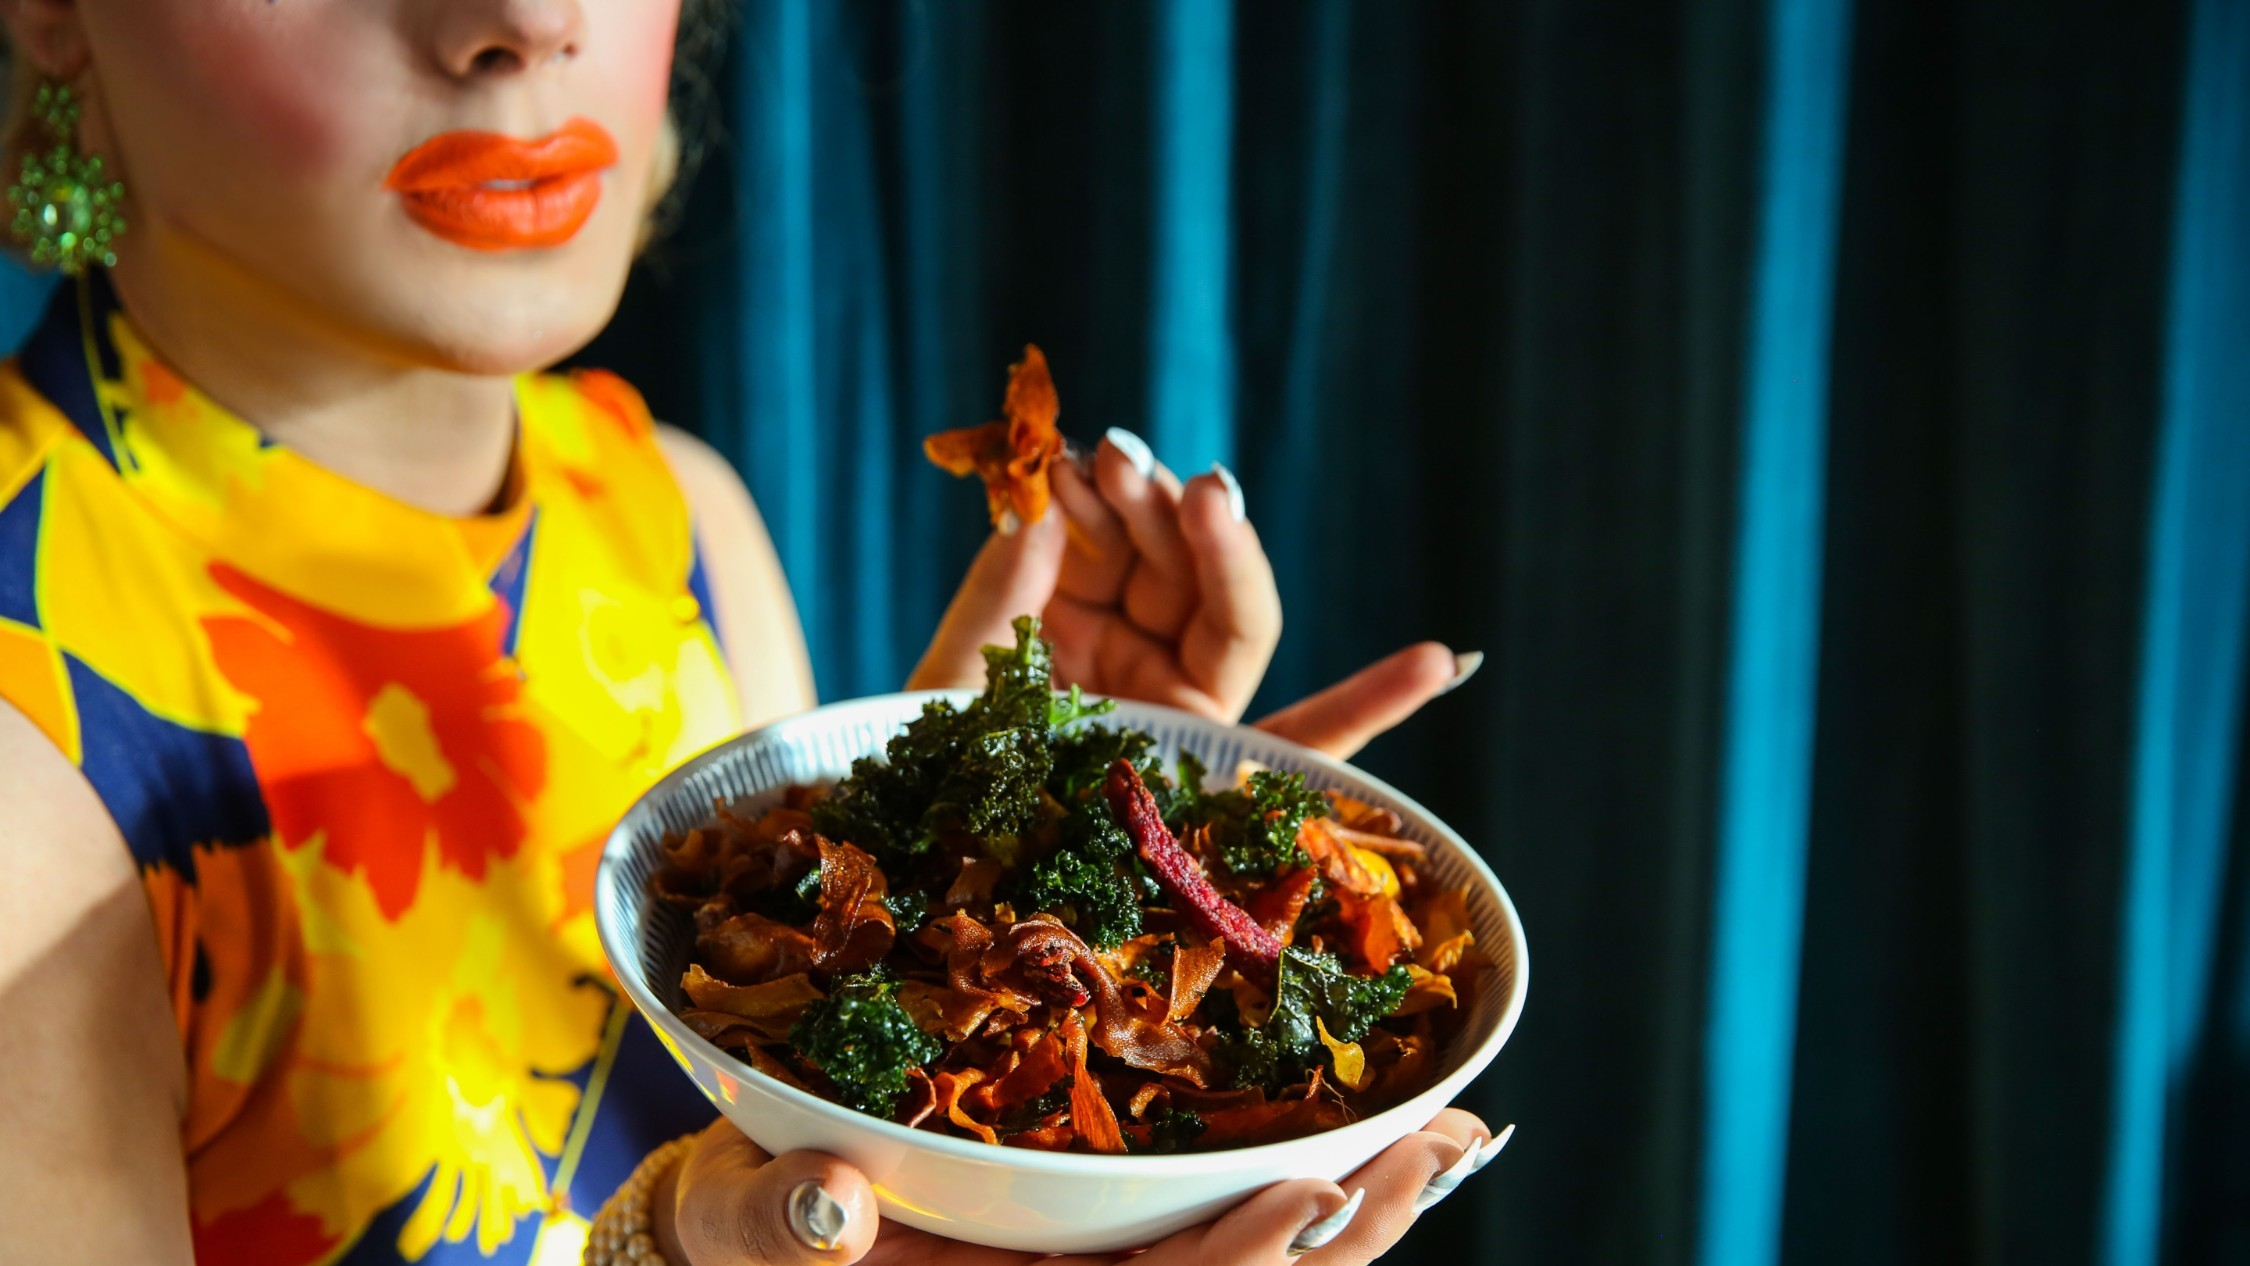 A person with bright makeup, orange lipstick and a floral dress holds up a salad full of sweet potato crisps.